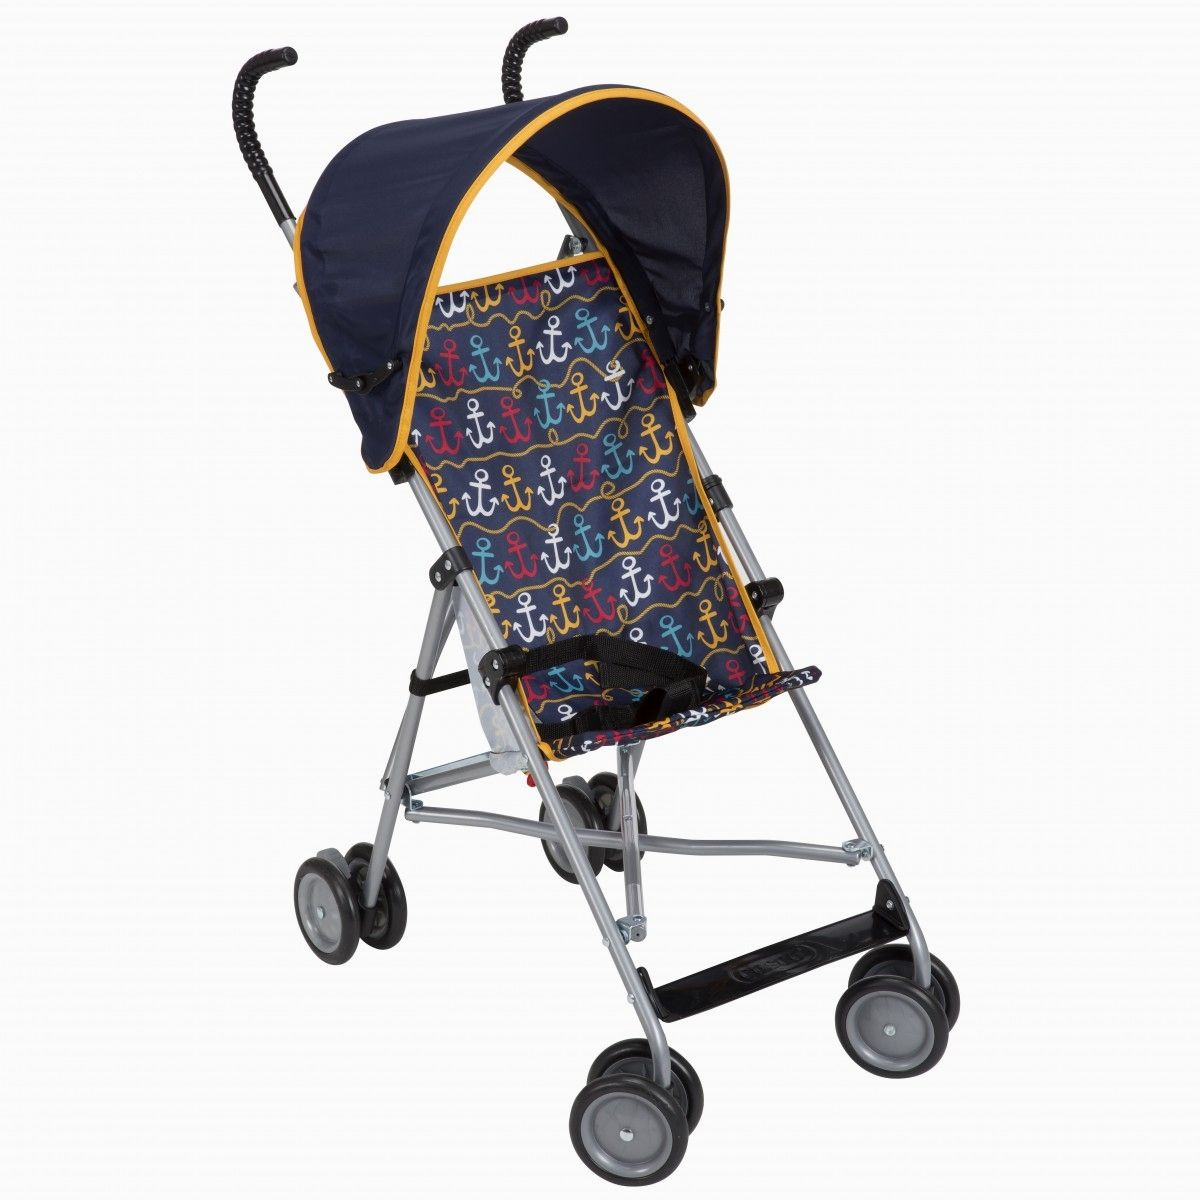 Reclining umbrella stroller created especially for